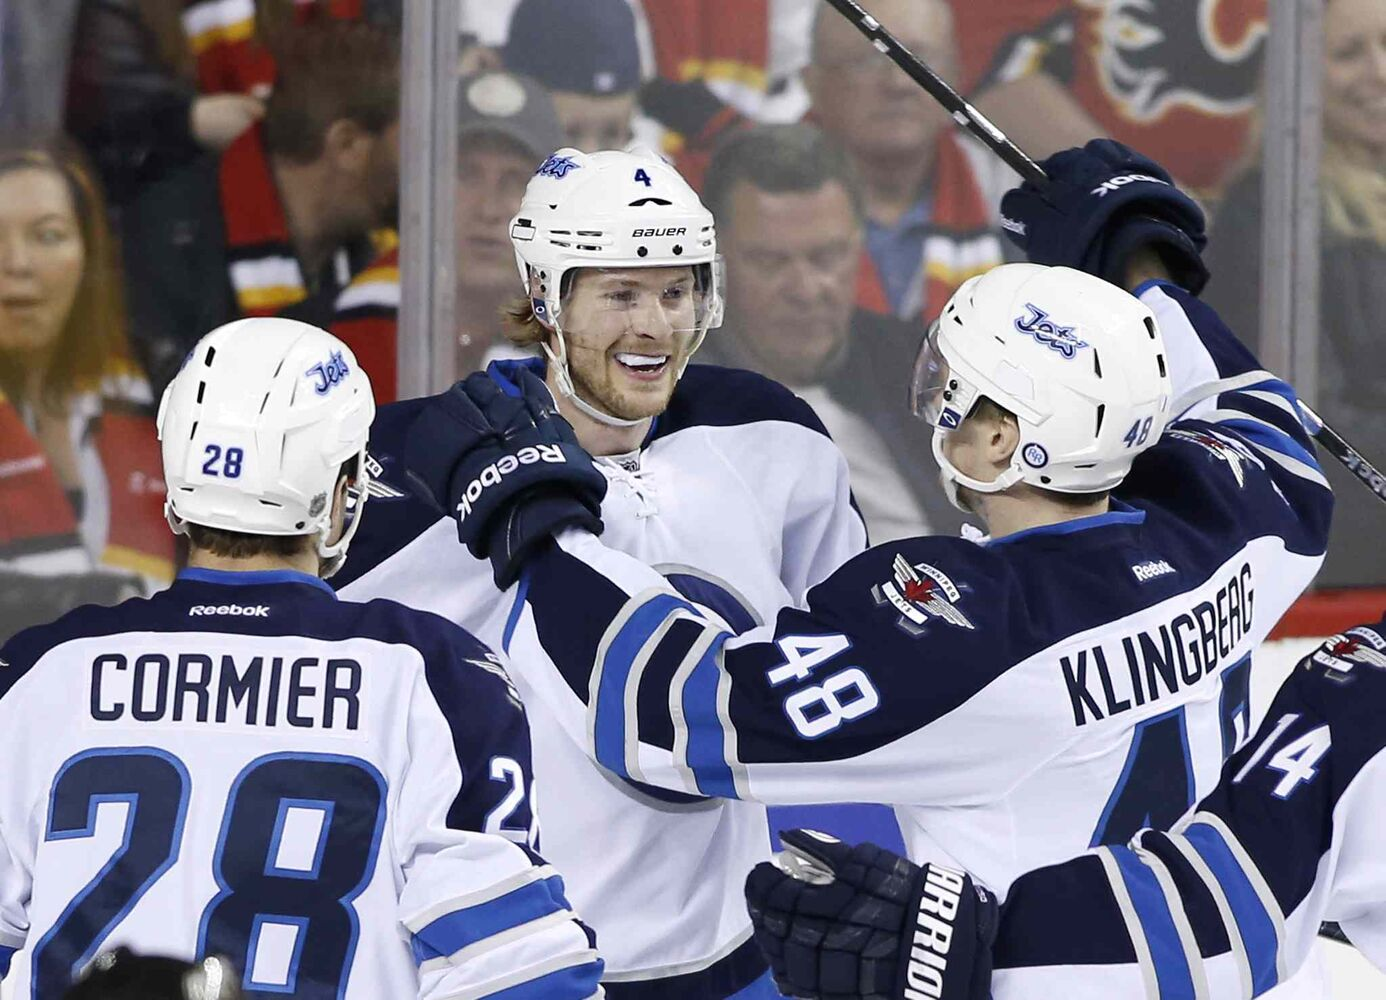 Winnipeg Jets' Paul Postma, centre, celebrates his game-winning goal against the Calgary Flames with Patrice Cormier, left, and Carl Klingberg on Friday to end the Jets' final game of the season.